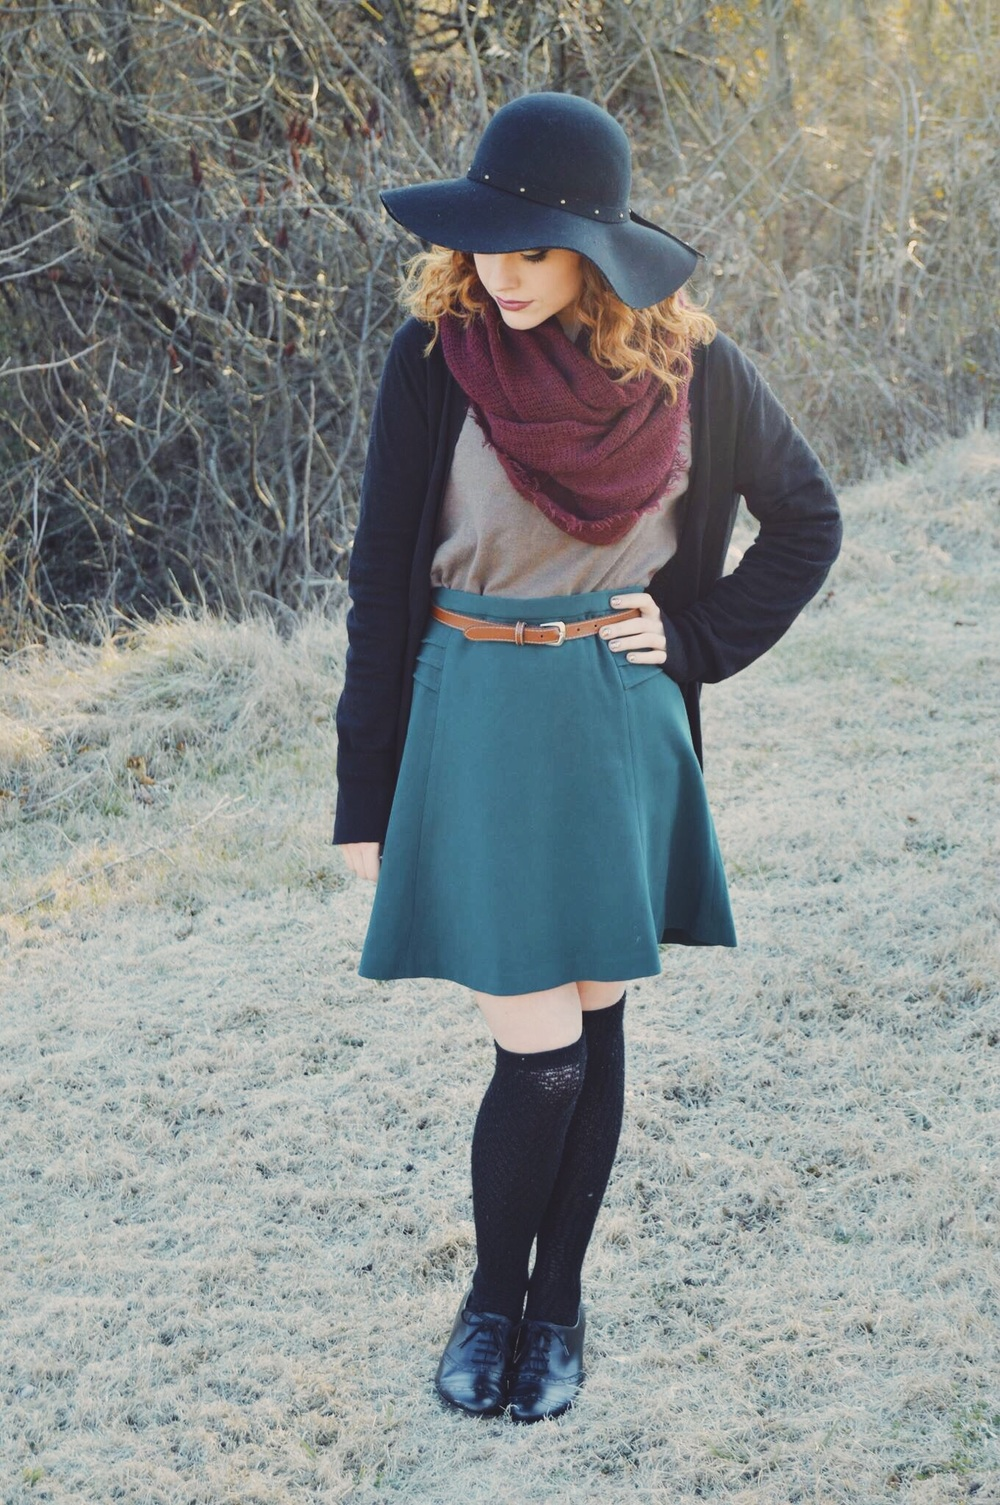 hat: Urban Outfitters sale / scarf: Old Navy sale / cardigan: Goodwill $5 (J. Crew) / sweater: Goodwill / skirt: thrifted and gifted from my sister / belt: thrifted / socks: Urban Outfitters sale $5 / shoes: Community Chest $1